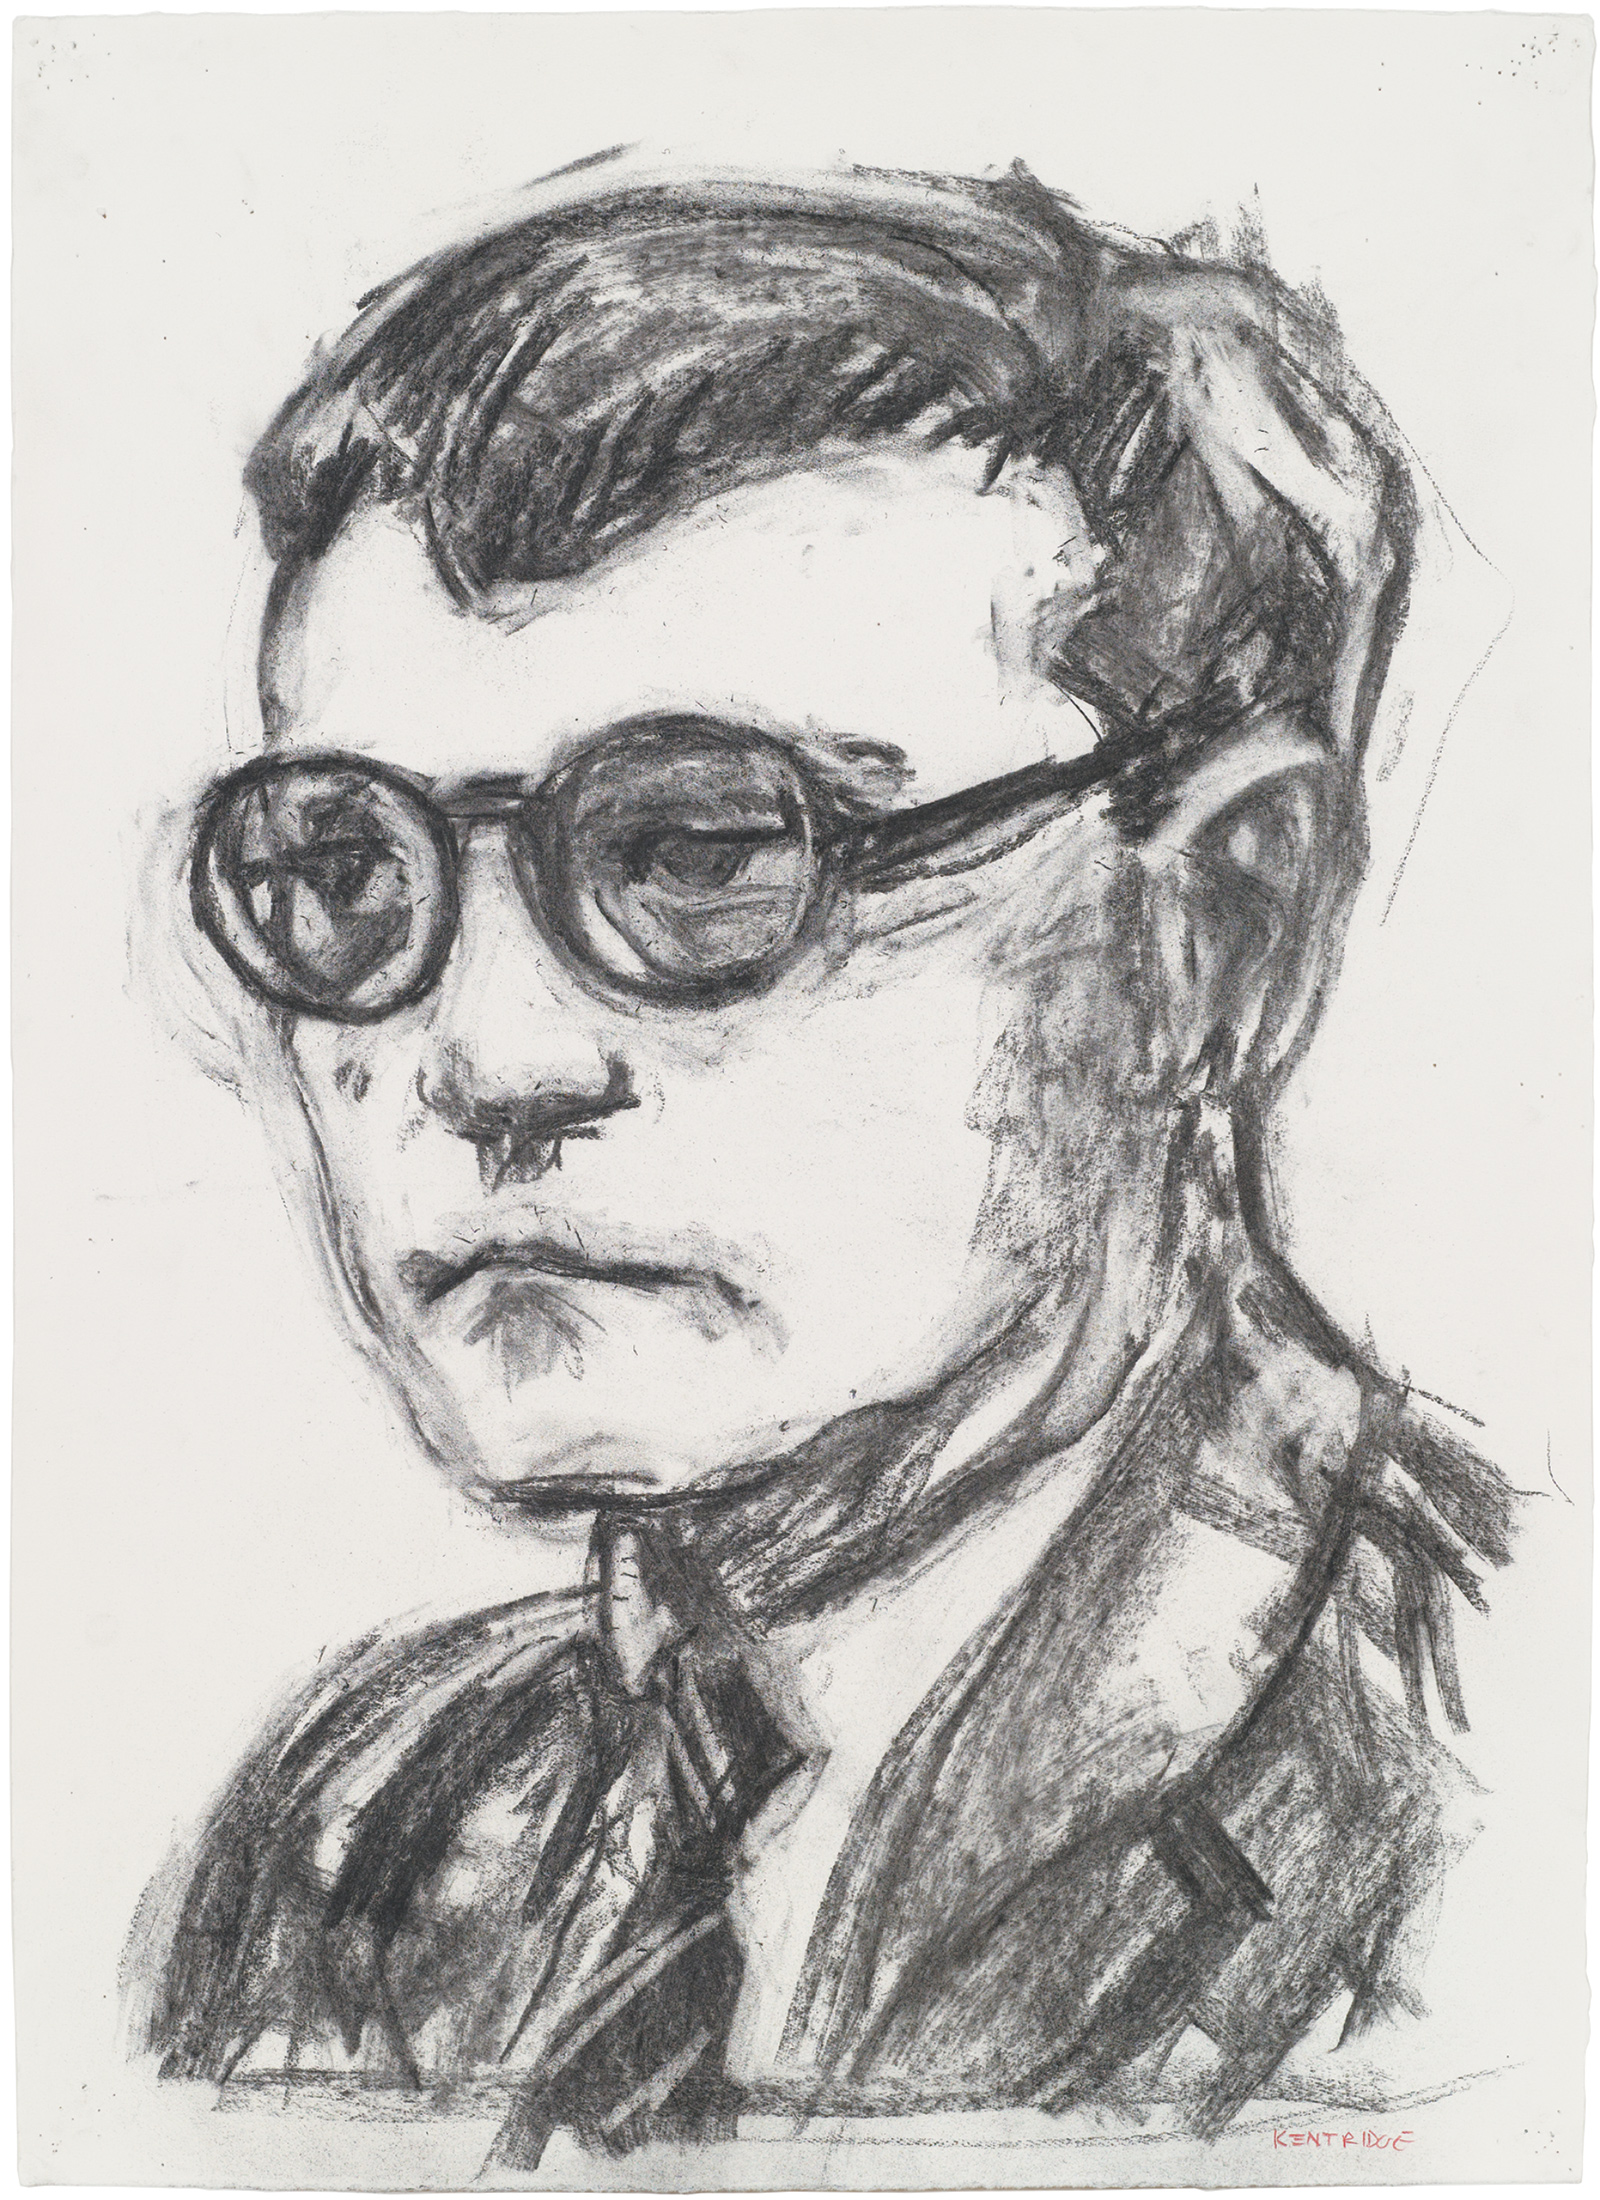 Dmitri Shostakovich; drawing by William Kentridge for his production of Shostakovich's opera The Nose, 2009